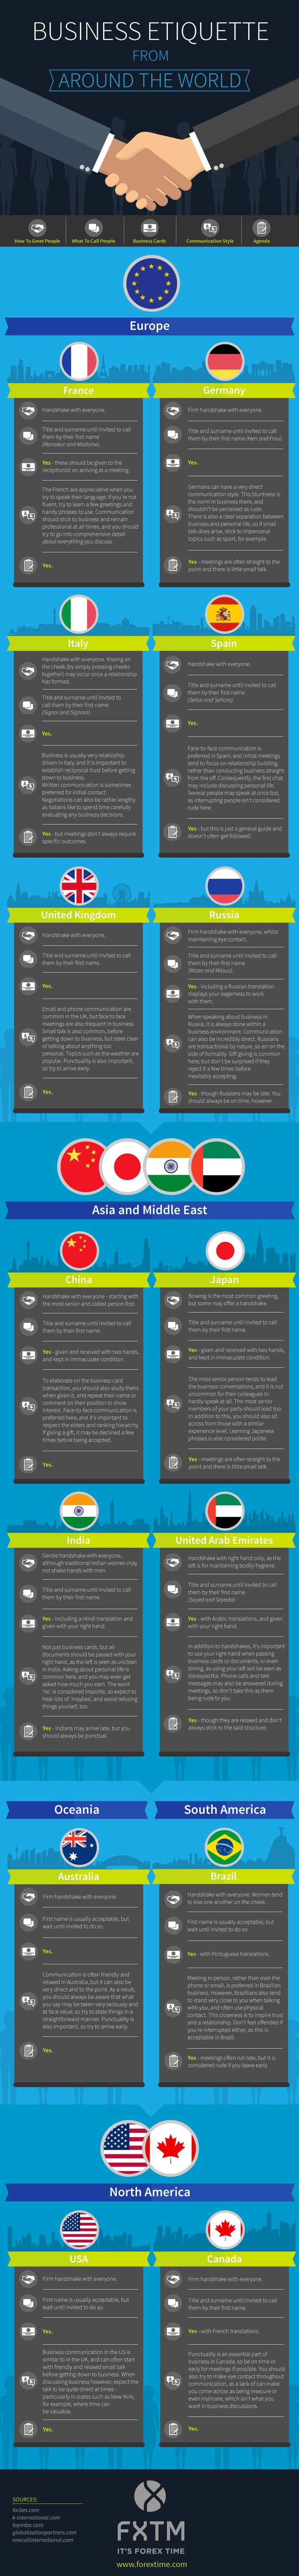 [INFOGRAPHIC] Business Etiquette Basics From Around the World—Know these cultural differences before you take your business to a new country; Details>